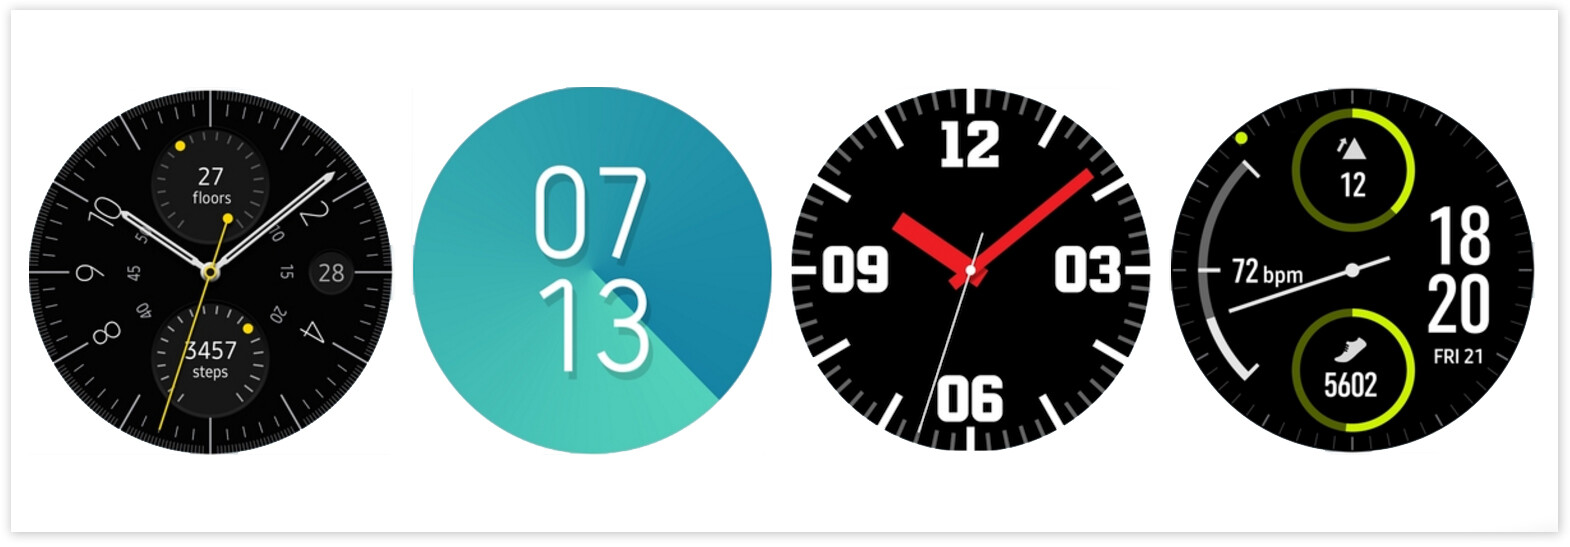 Super The official Samsung Gear Sport watch faces are now available on HS83